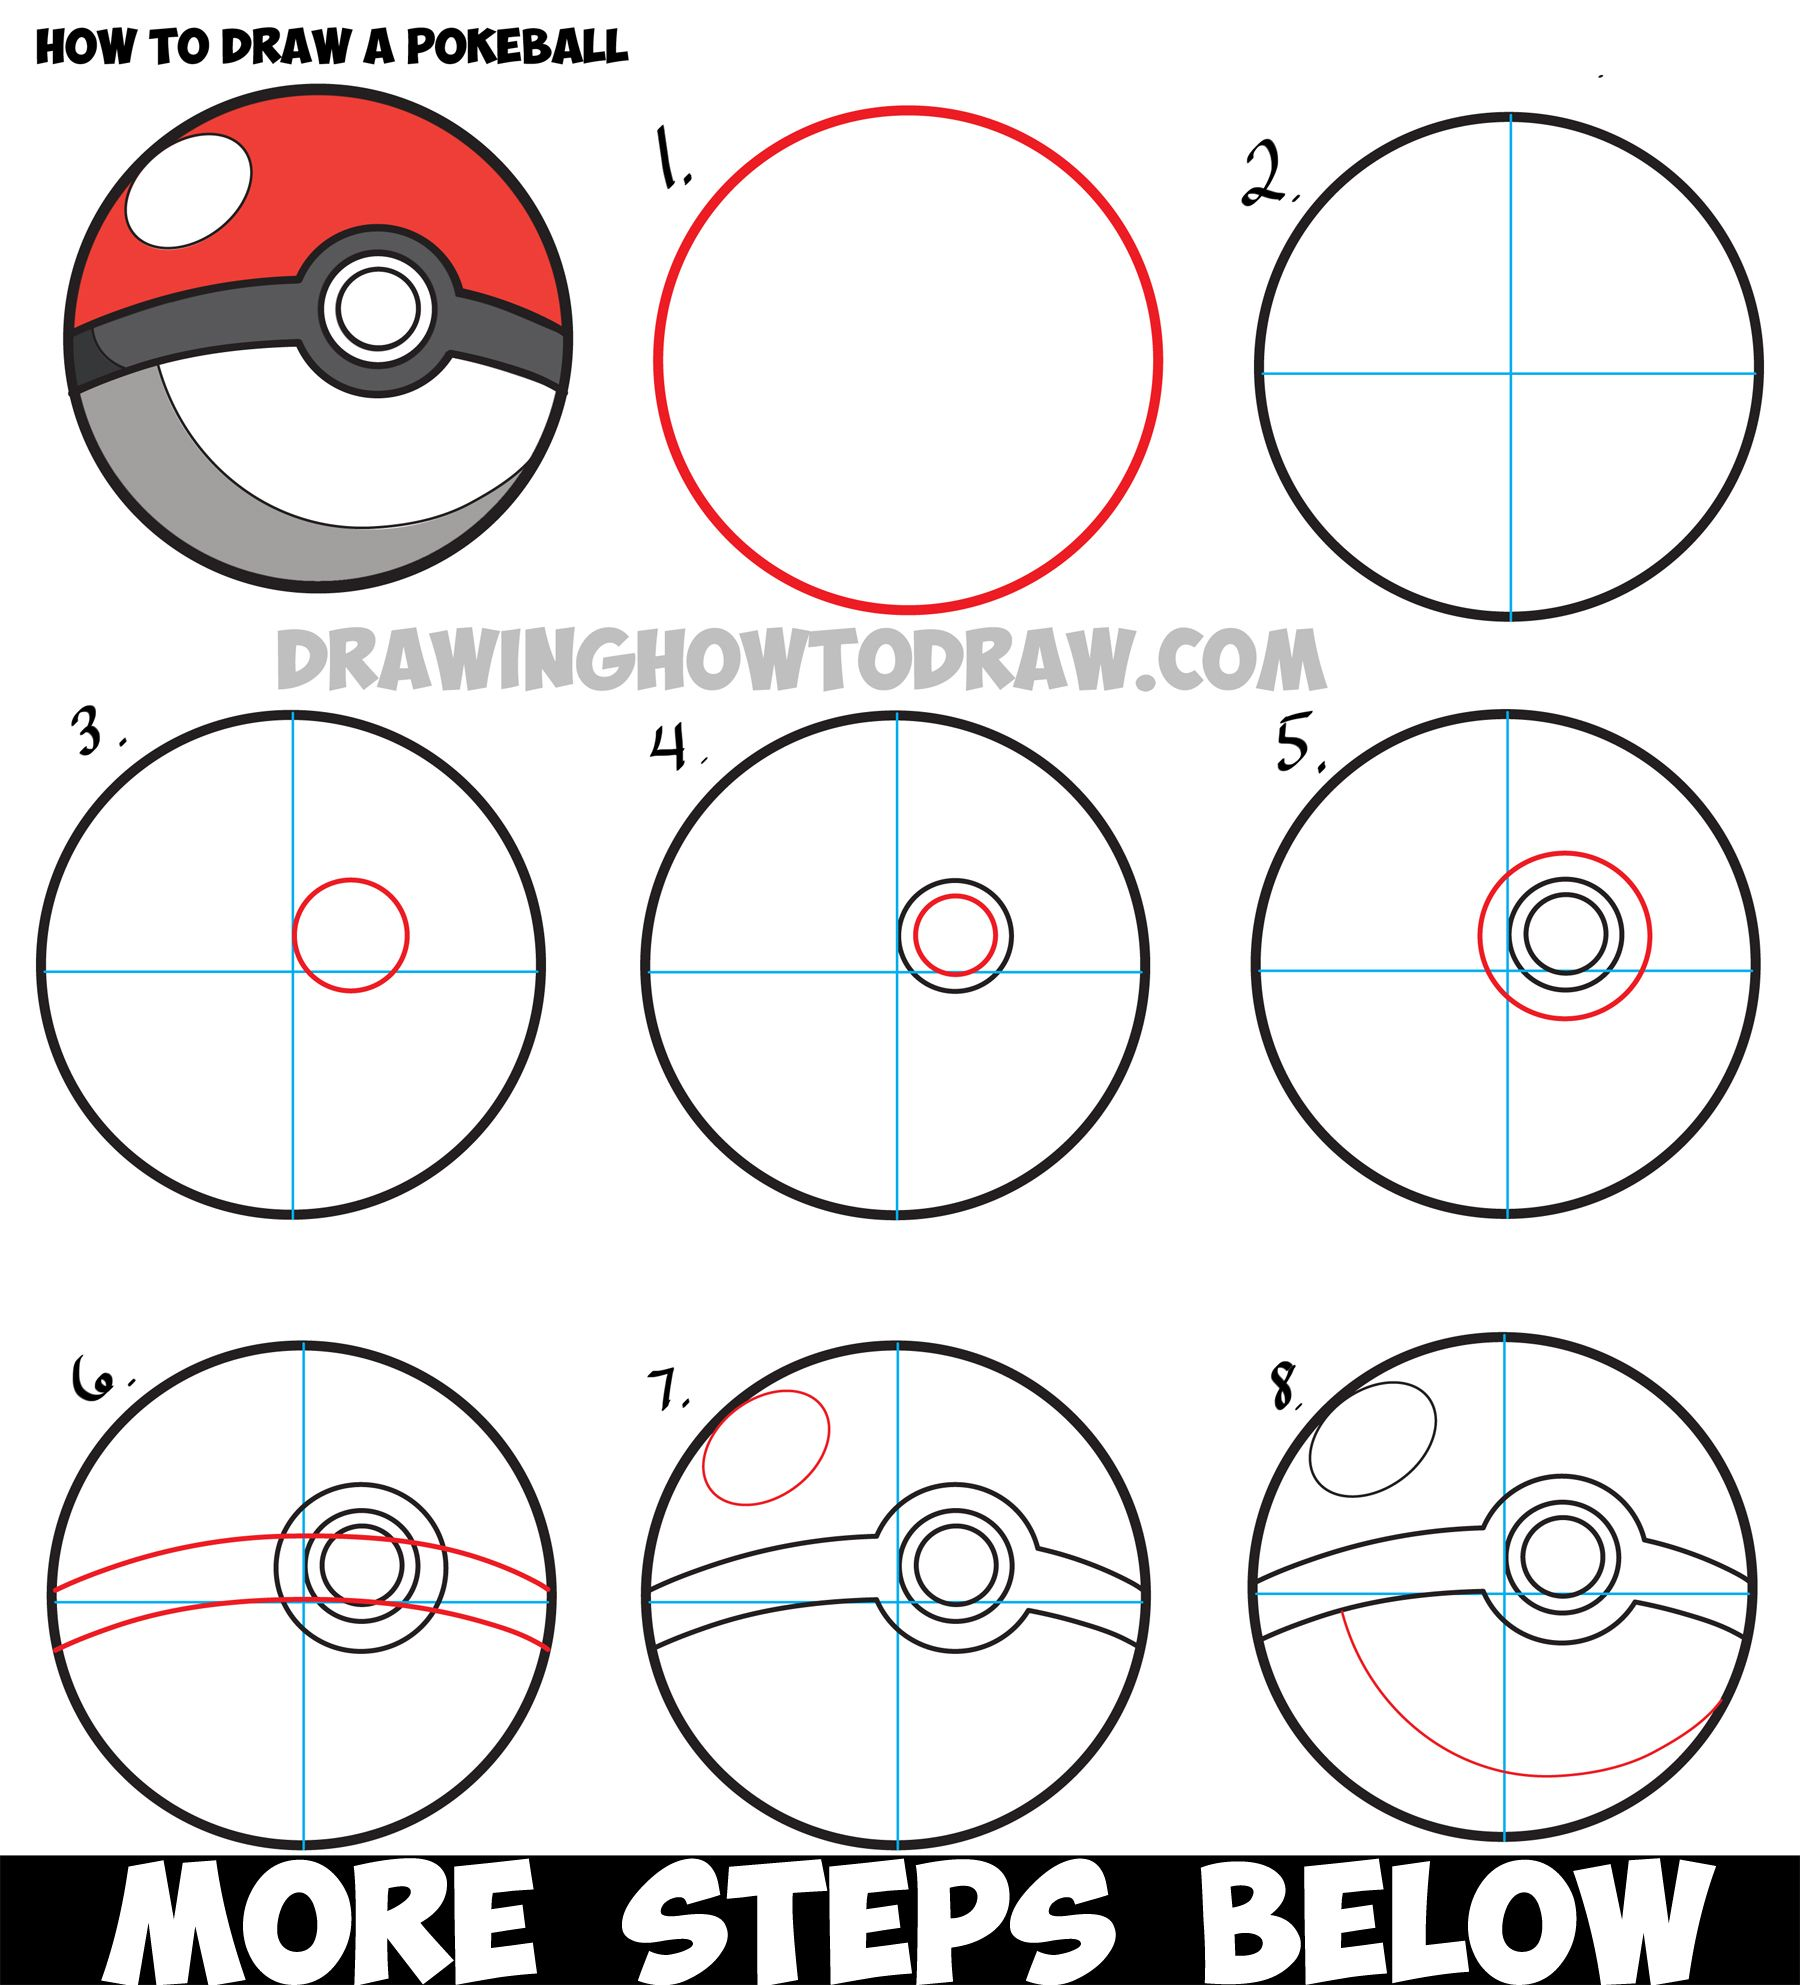 How To Draw A Pokeball From Pokemon  Easy Step By Step Drawing Tutorial